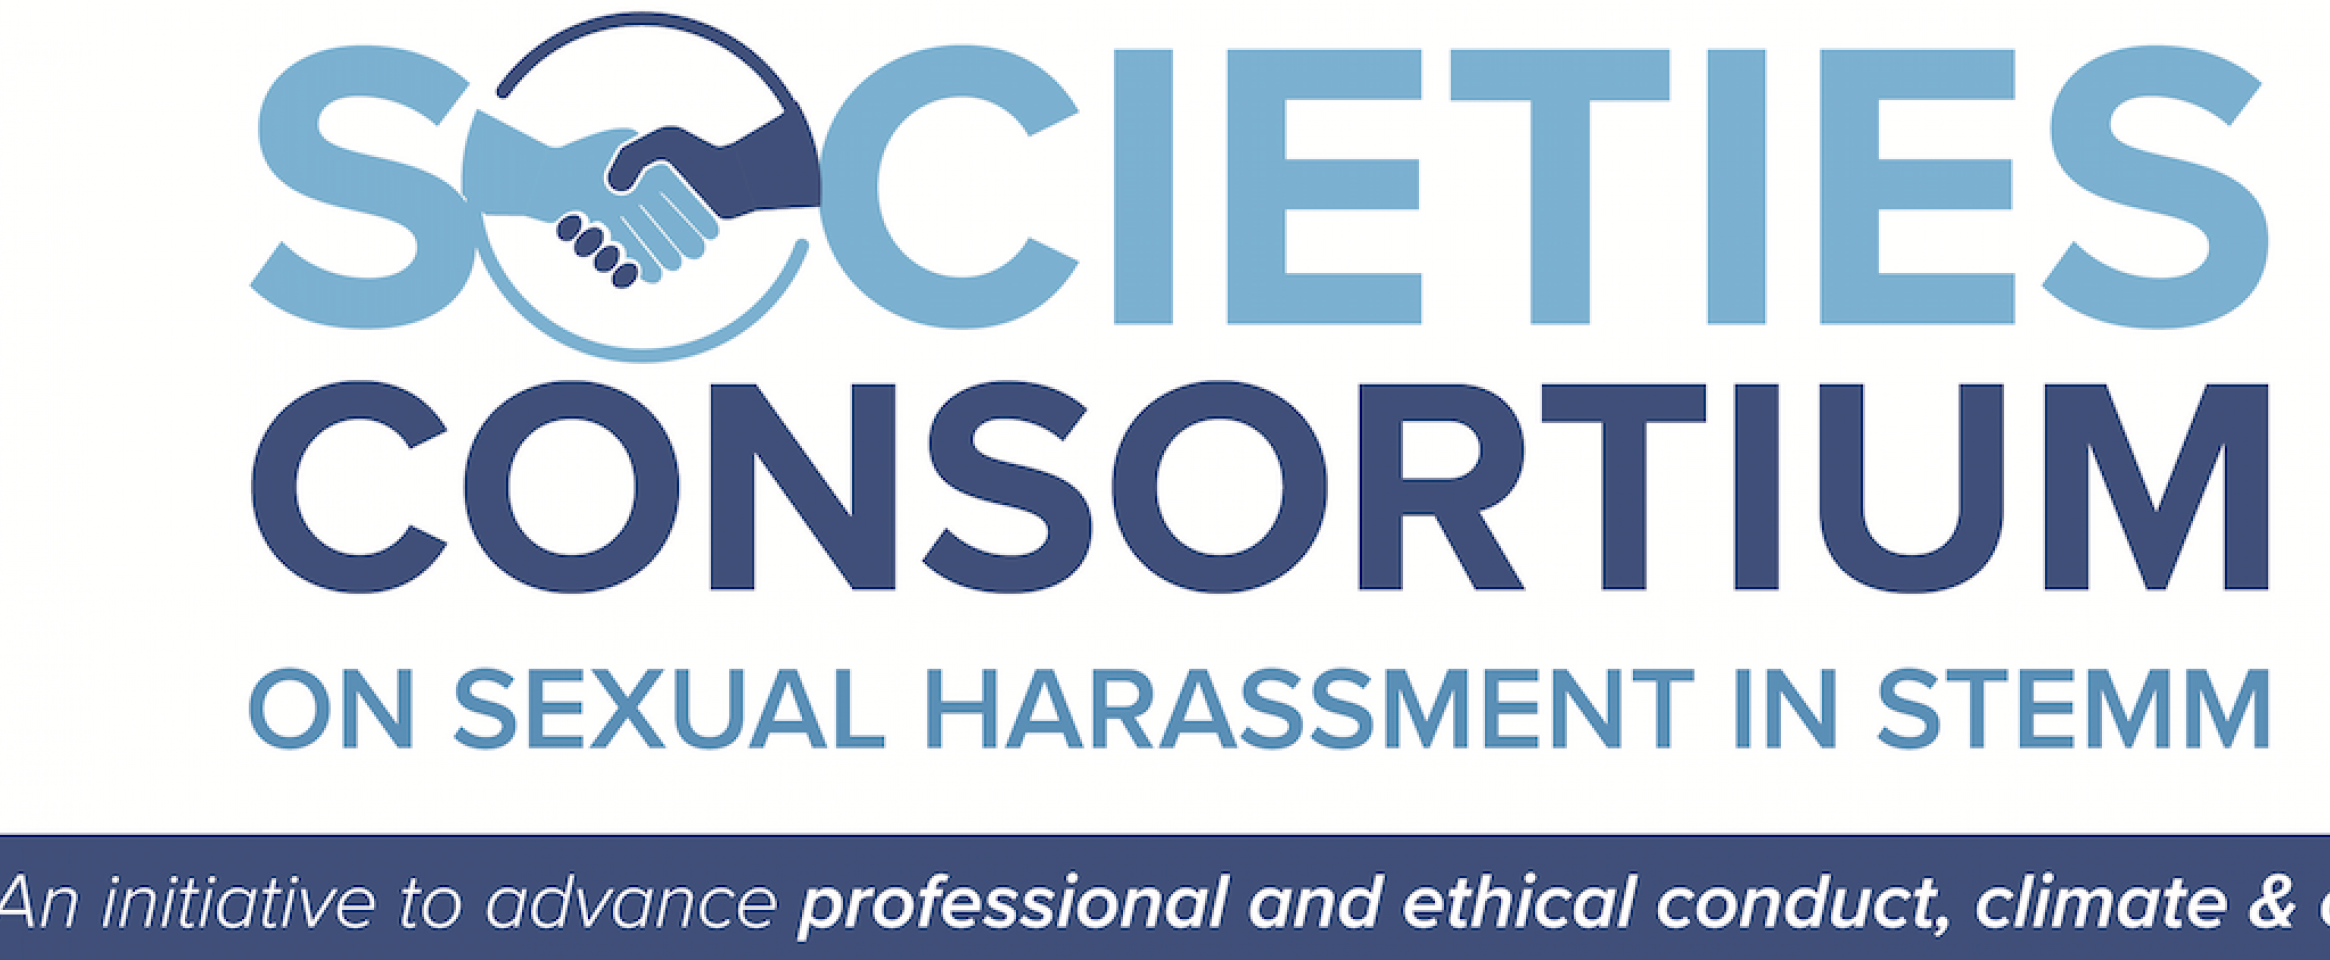 Logo of the Societies Consortium on Sexual Harassment in STEMM